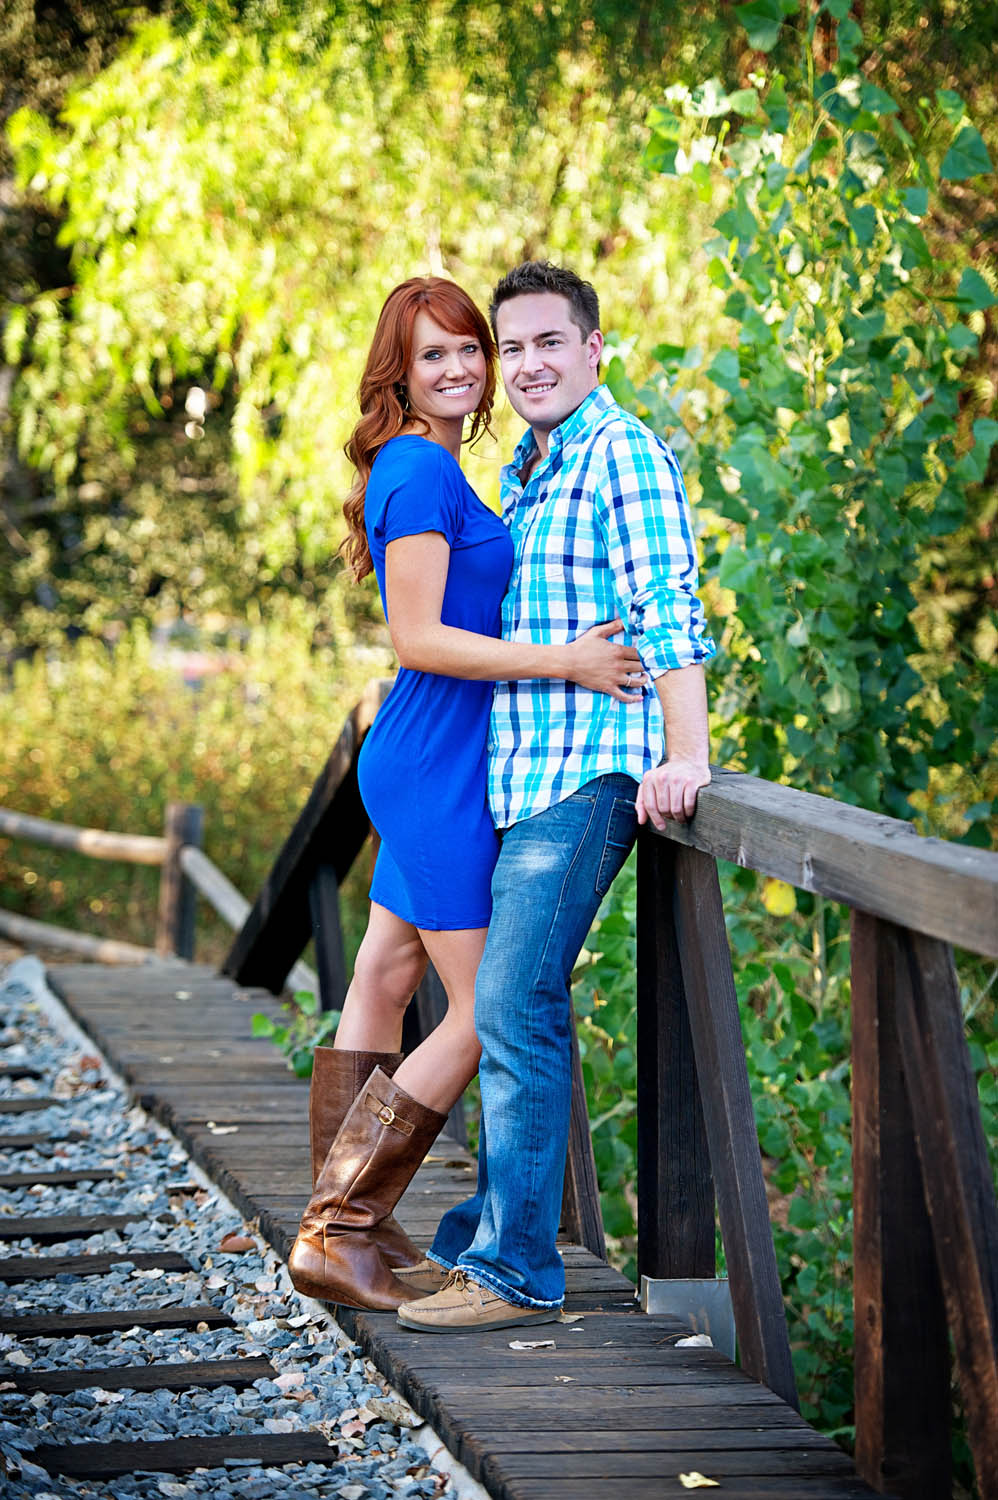 old-poway-park-engagement-photos-ian-andrew-photography-021.jpg